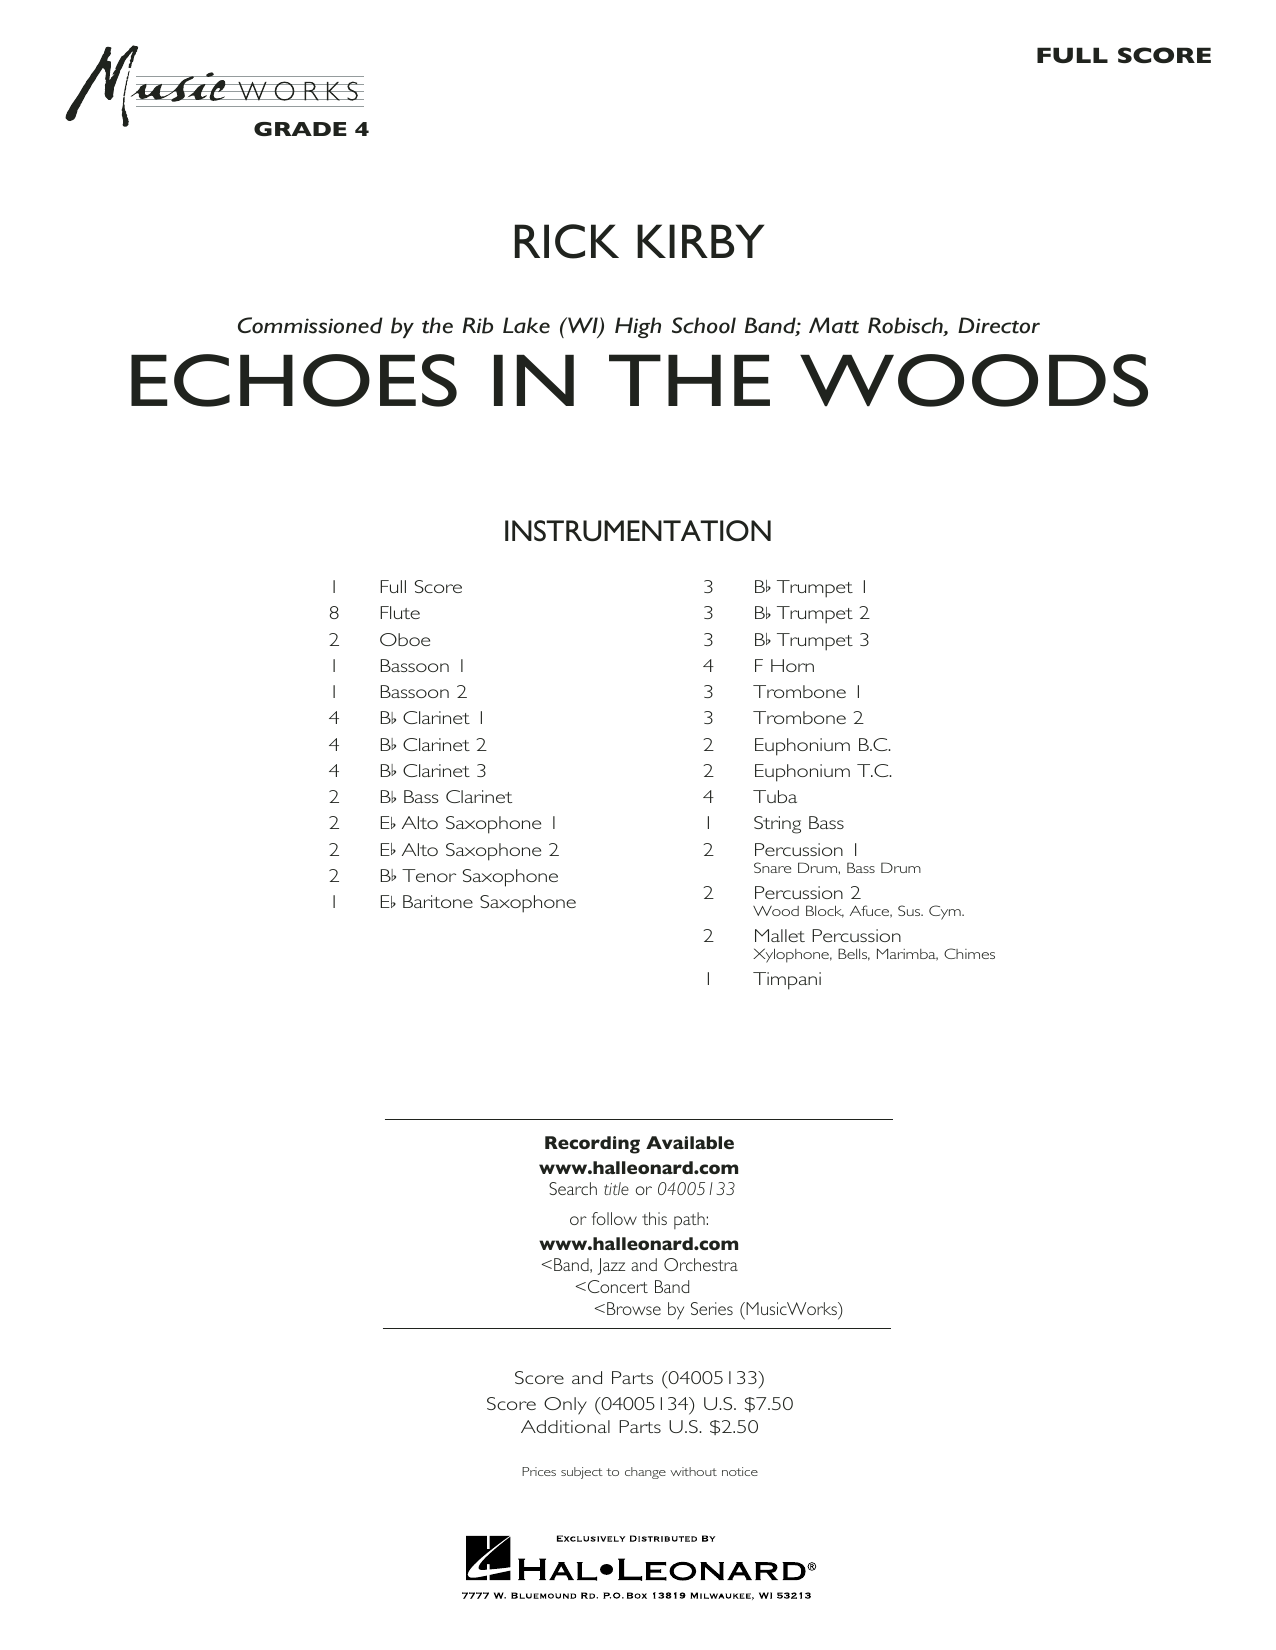 Rick Kirby Echoes in the Woods - Conductor Score (Full Score) sheet music preview music notes and score for Concert Band including 32 page(s)